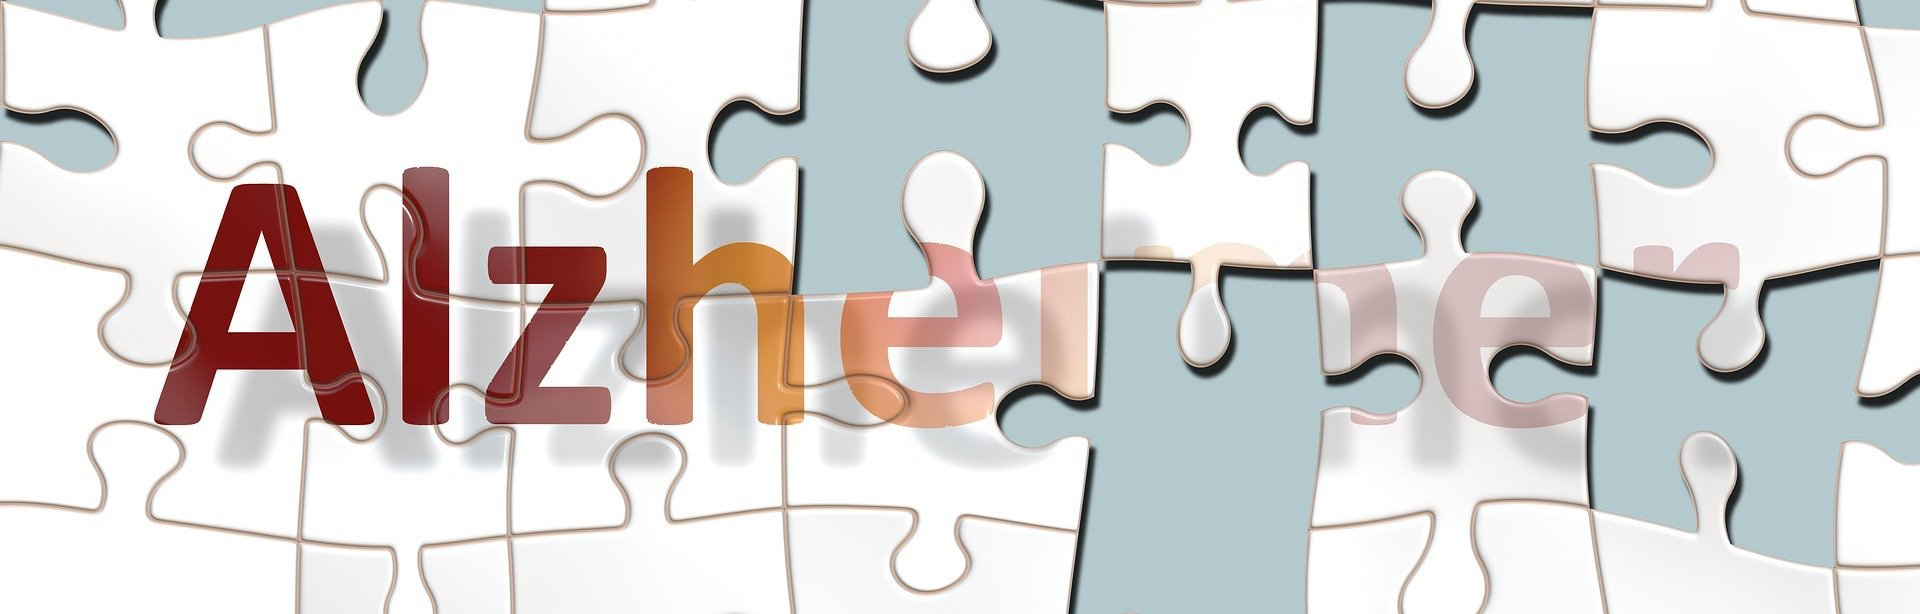 Puzzle with the Alzheimer on it and missing pieces